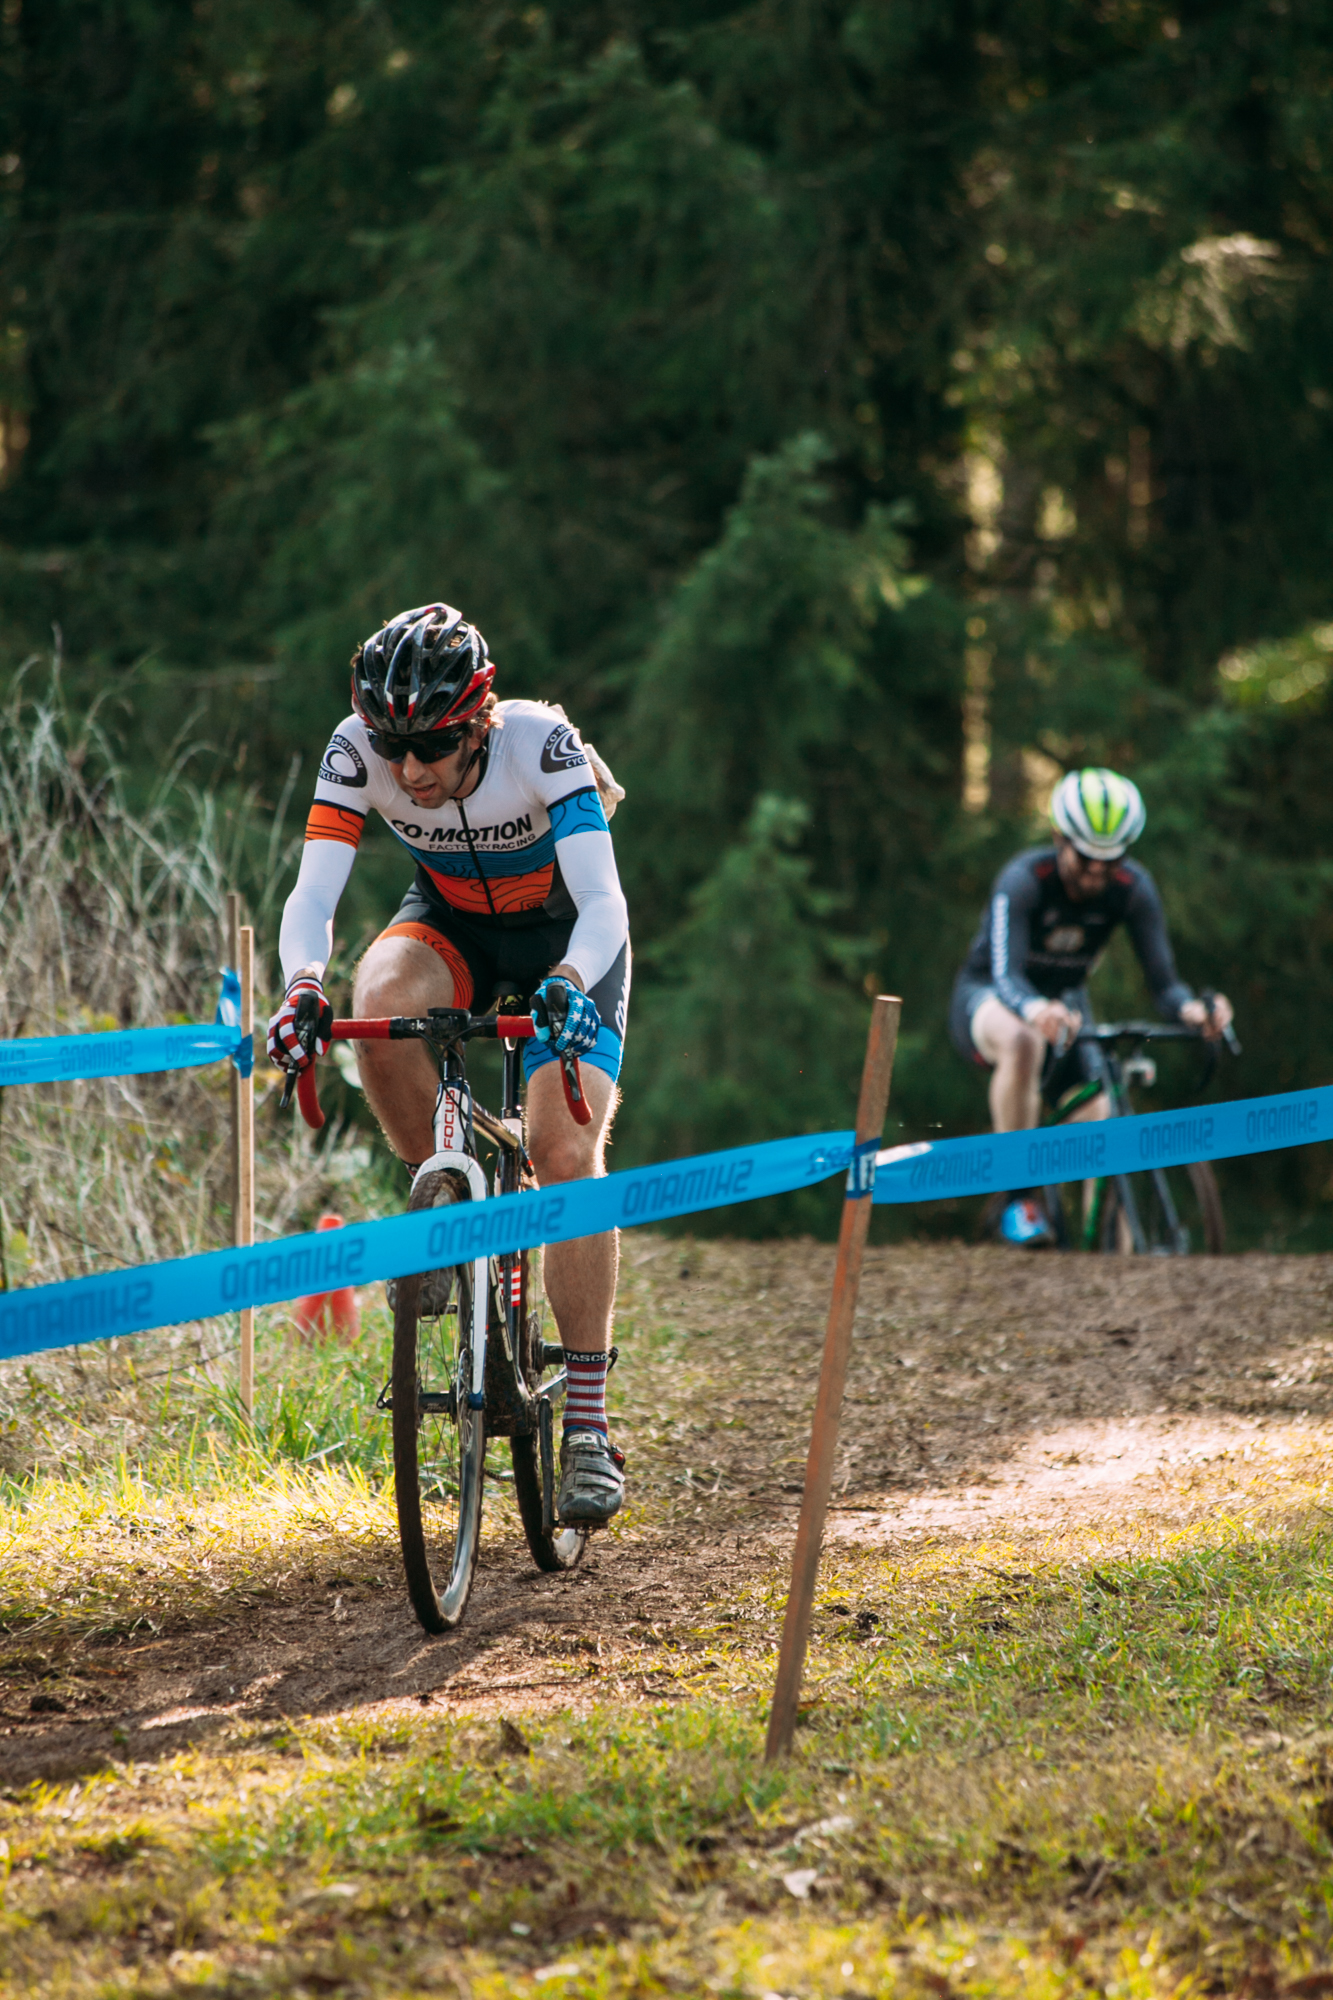 Cyclocross18_CCCX_RainierHS-129-mettlecycling.jpg